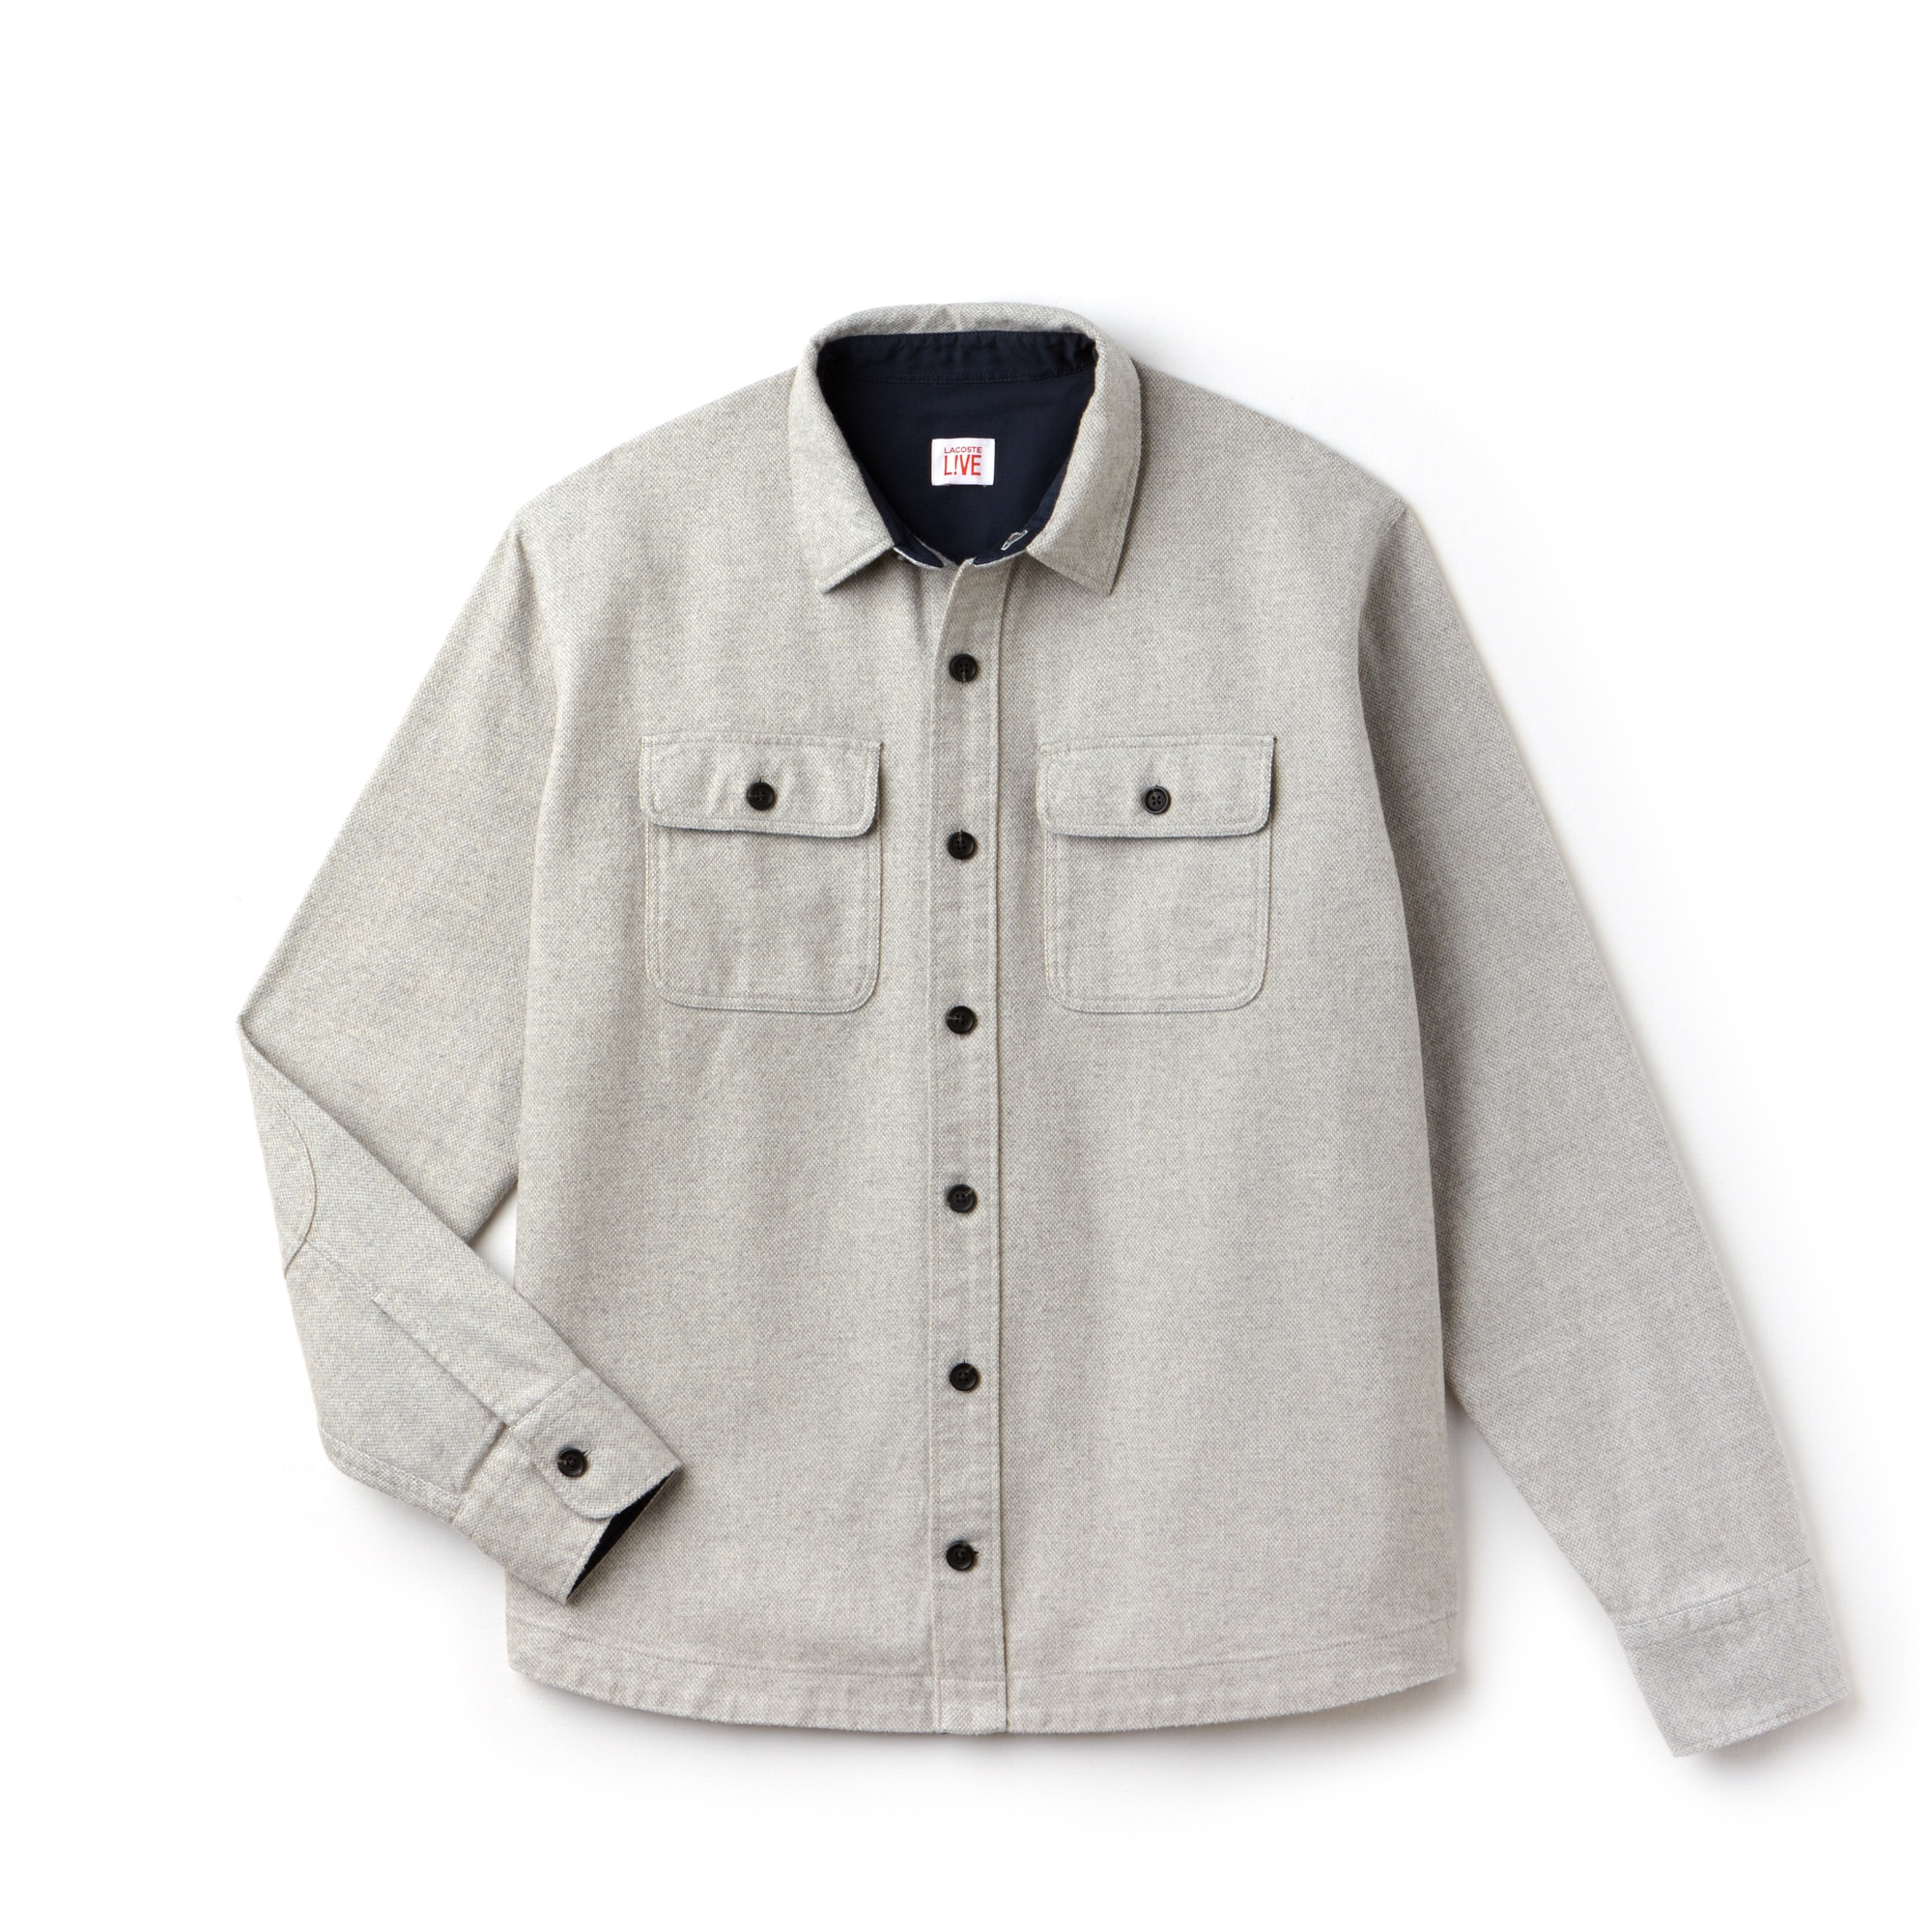 Lacoste LIVE-shirt heren boxy fit katoenflanel